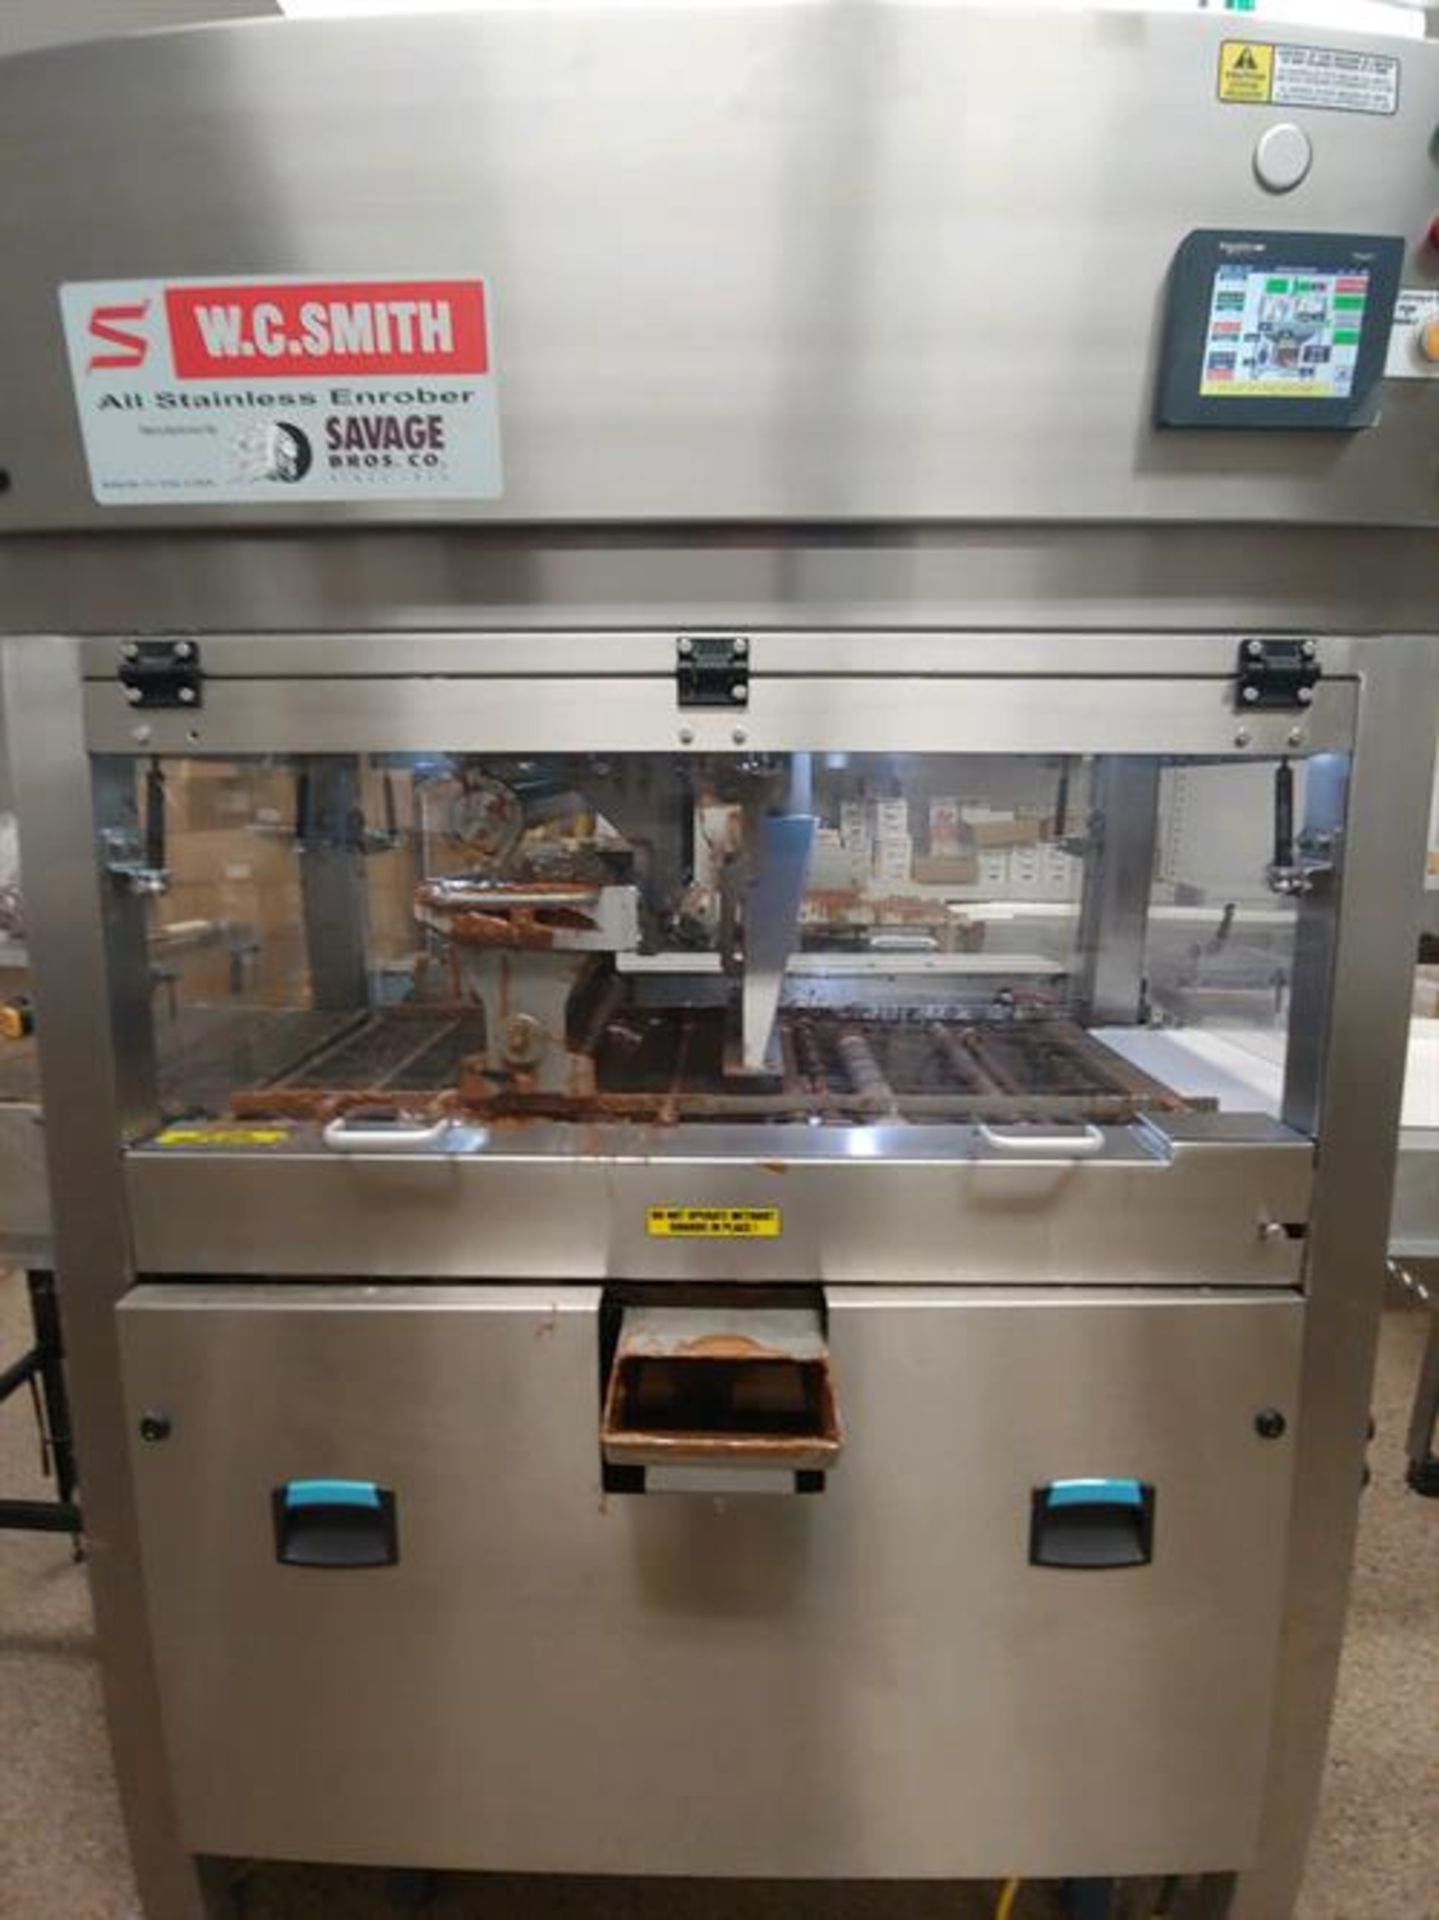 """Savage 16"""" Stainless Steel Enrober - Model 5216 - Removable stainless steel tank"""